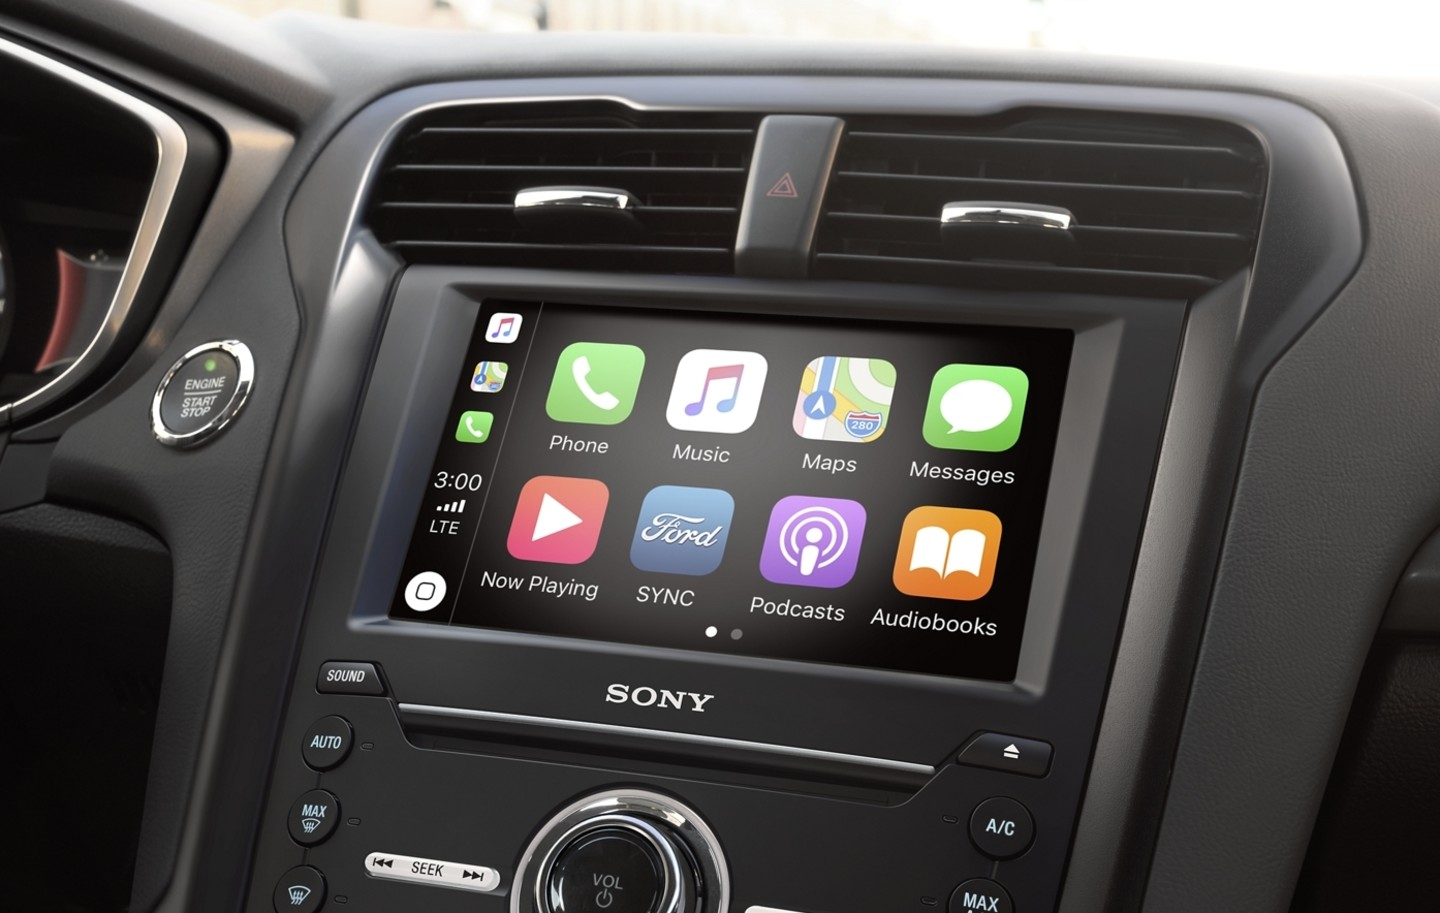 Infotainment in the 2020 Ford Fusion